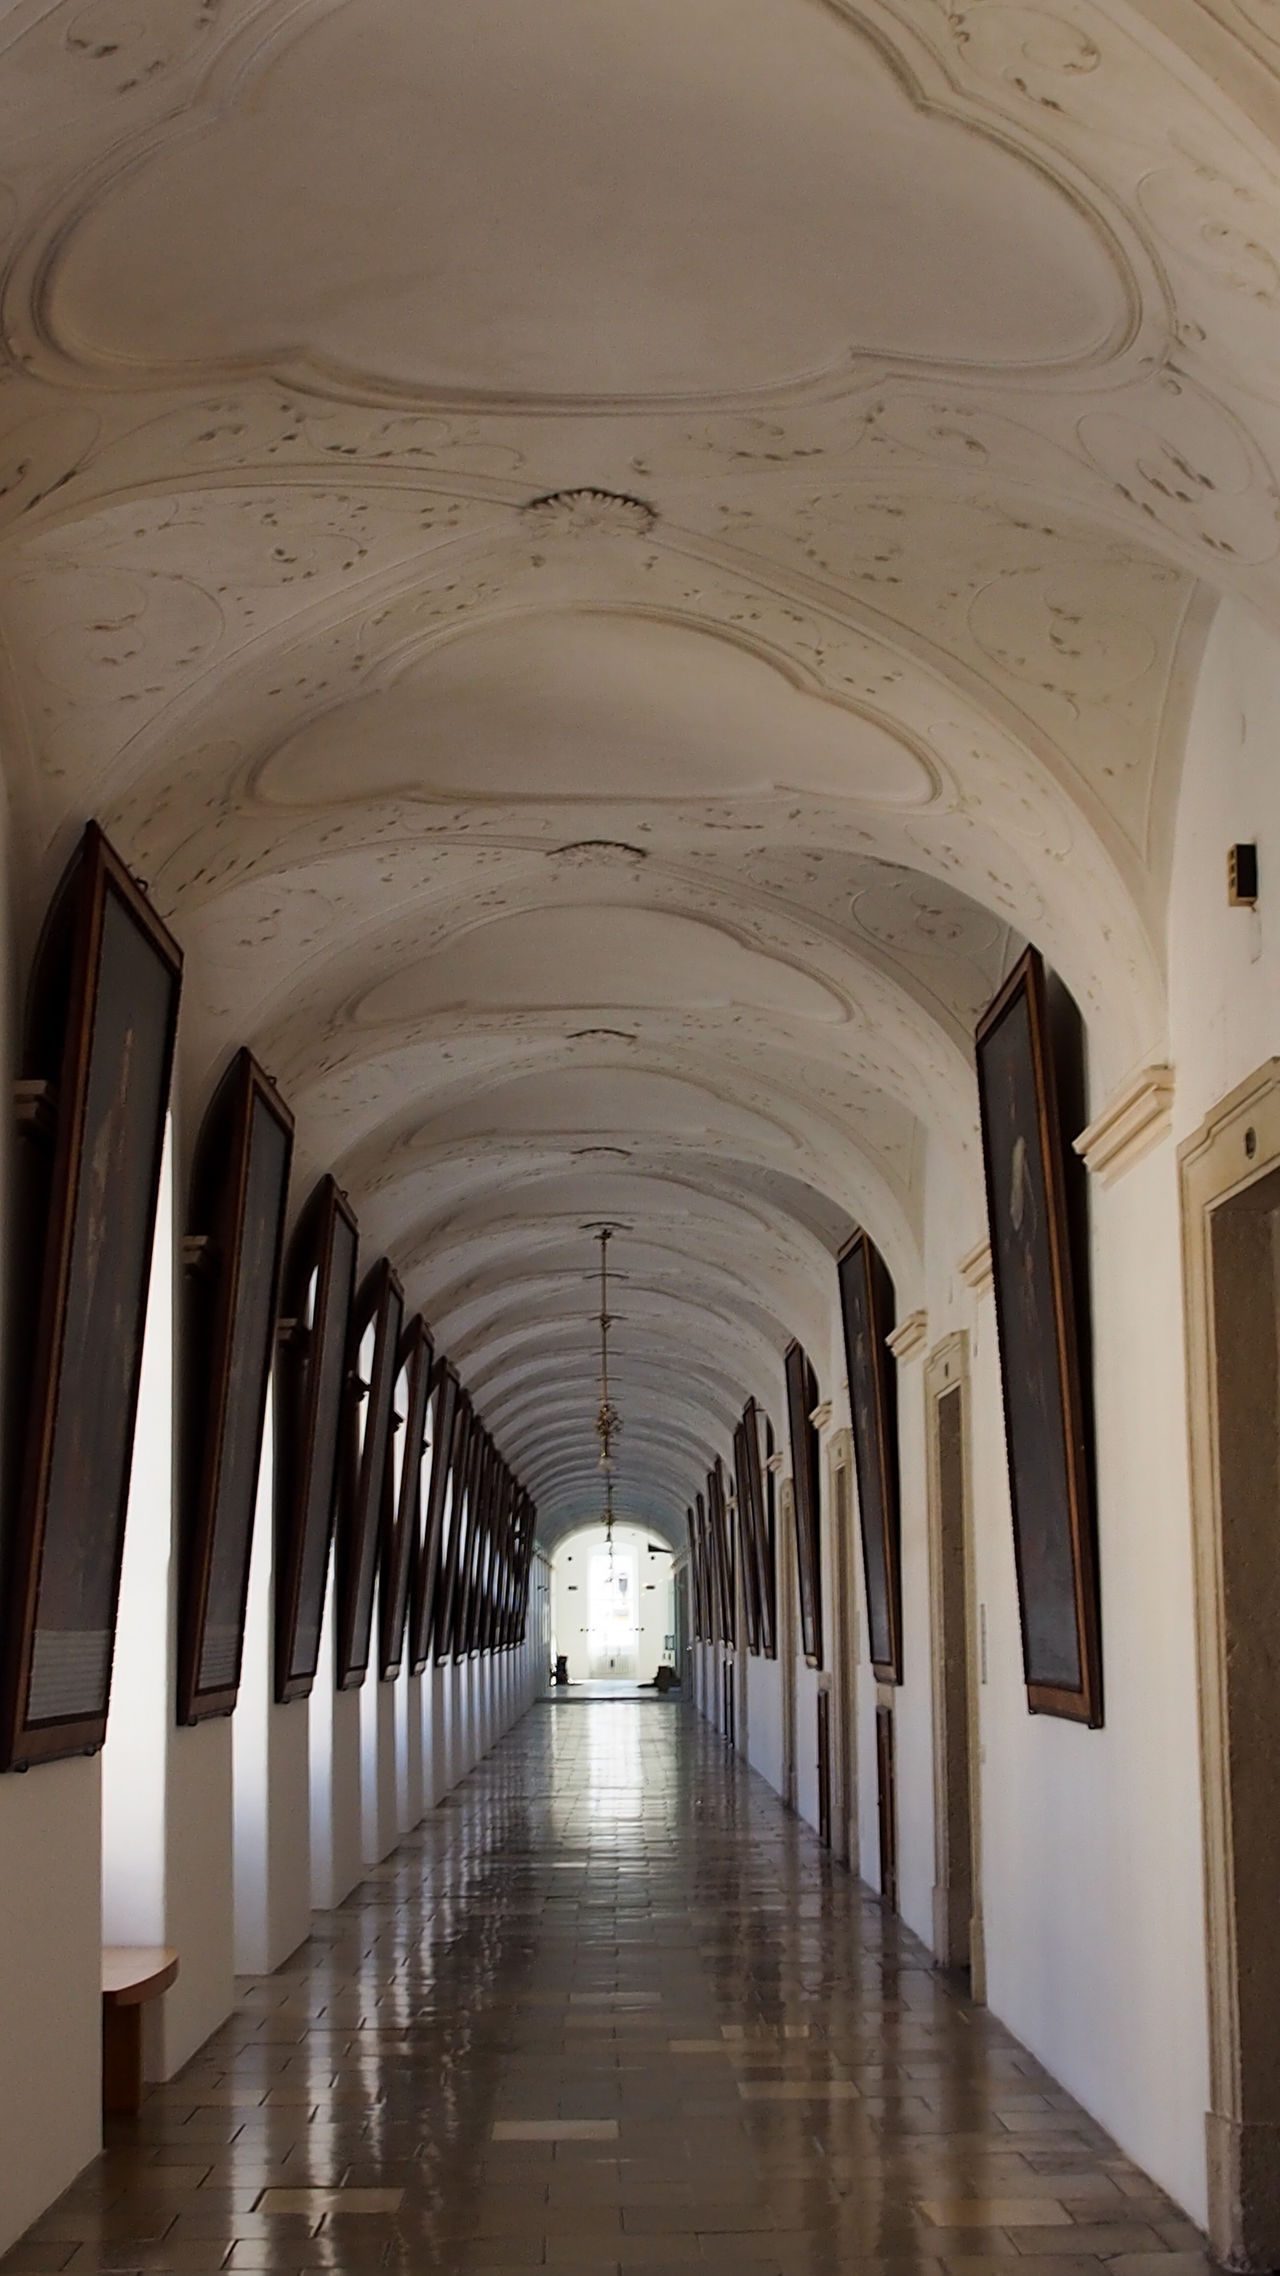 Arch Arched Architectural Column Architectural Feature Architecture Bradley Olson Bradleywarren Photography Built Structure Ceiling Ceiling Light  Colonnade Corridor Diminishing Perspective Empty Floor Flooring In A Row Indoors  Long Narrow Pillar Surface Level The Way Forward Tourism Vanishing Point